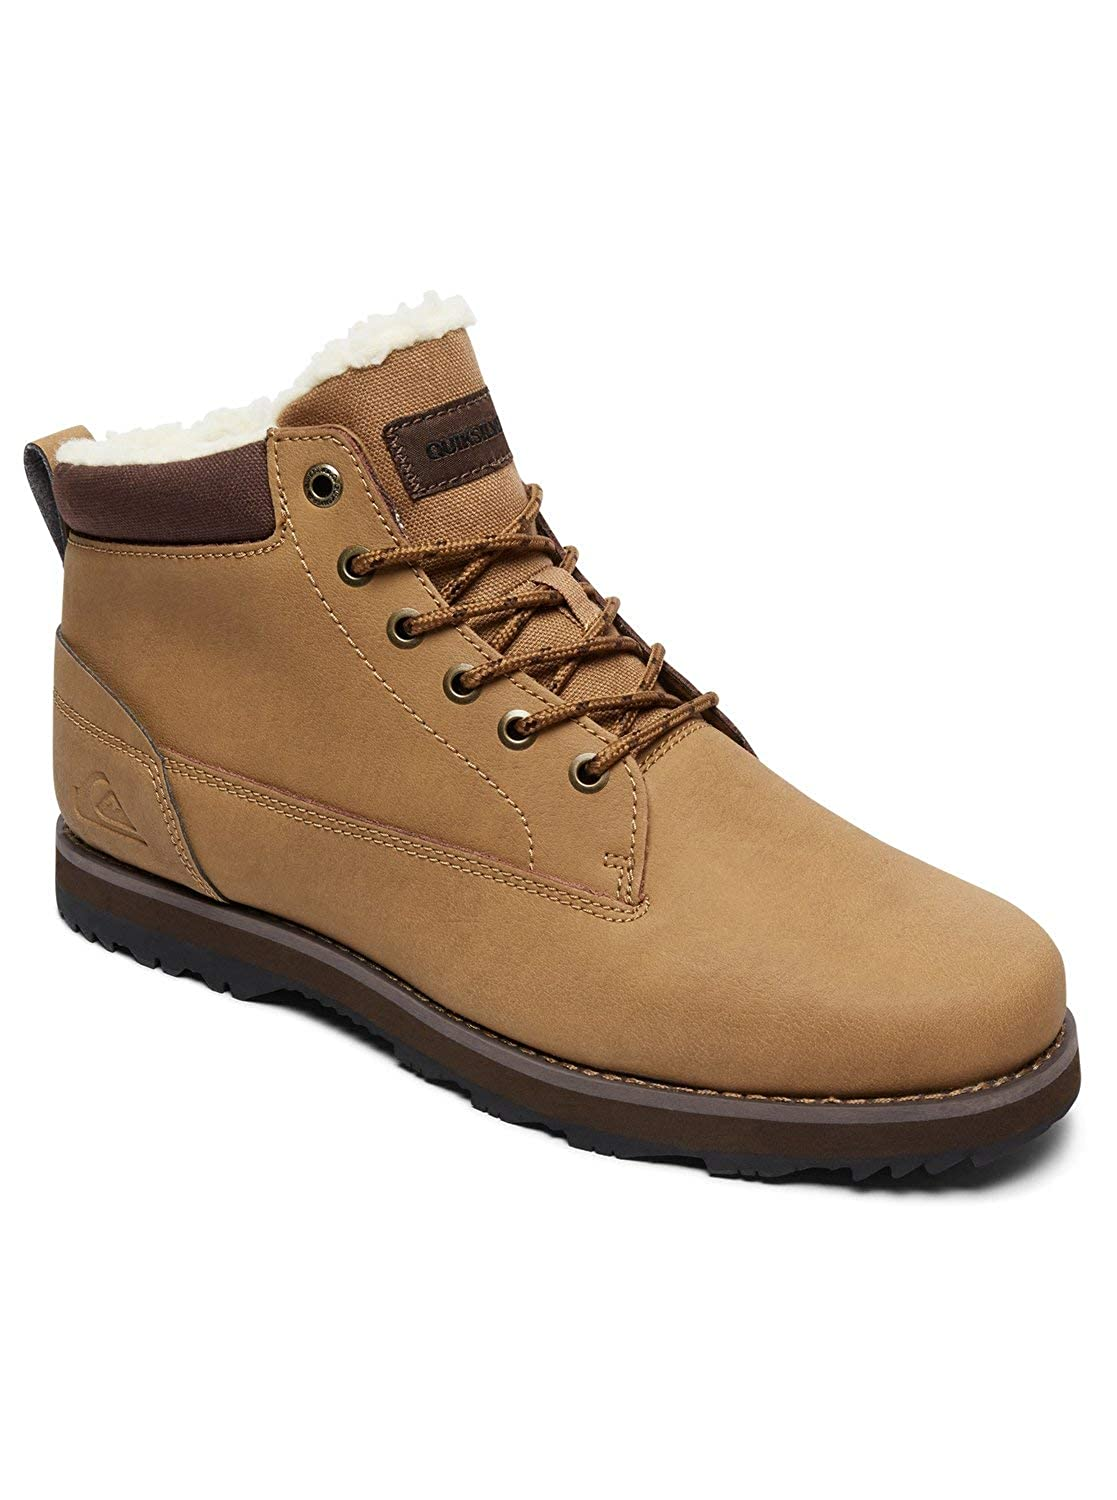 Quiksilver Mission V-Shoes For Men, Botas de Nieve para Hombre